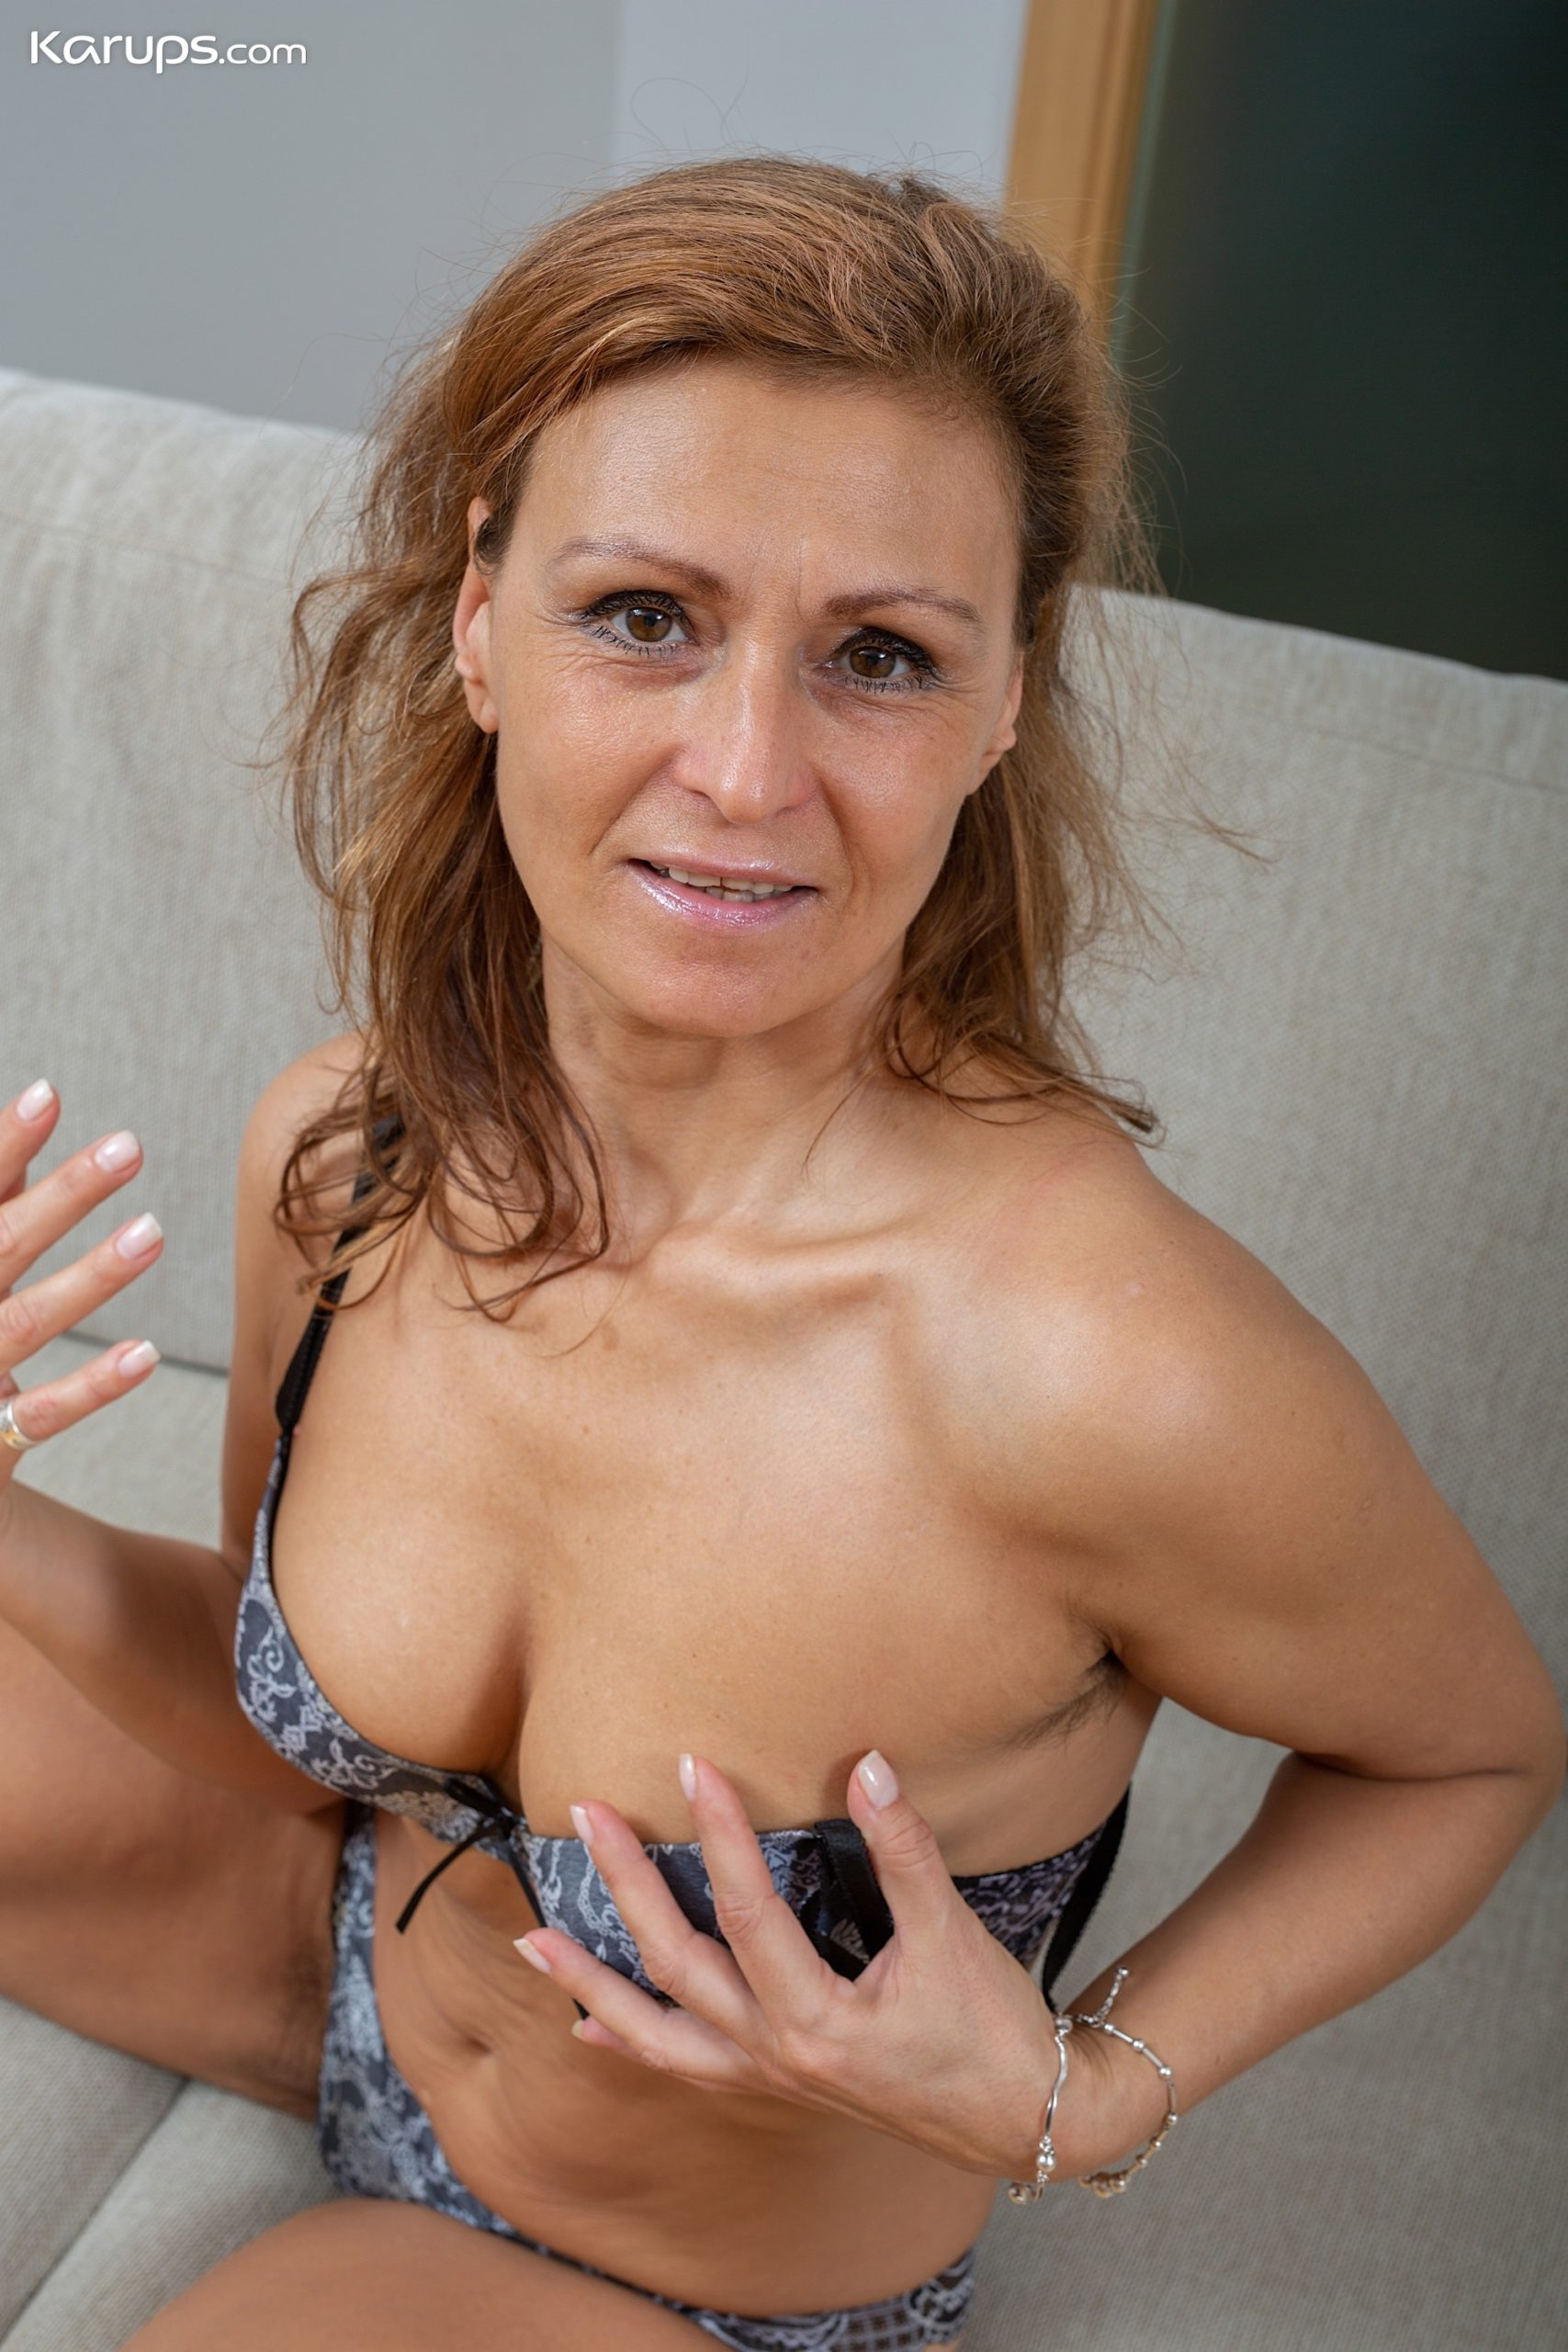 Sexy Milf Drugaya Exposes Her Hairy Older Pussy At Karupsow